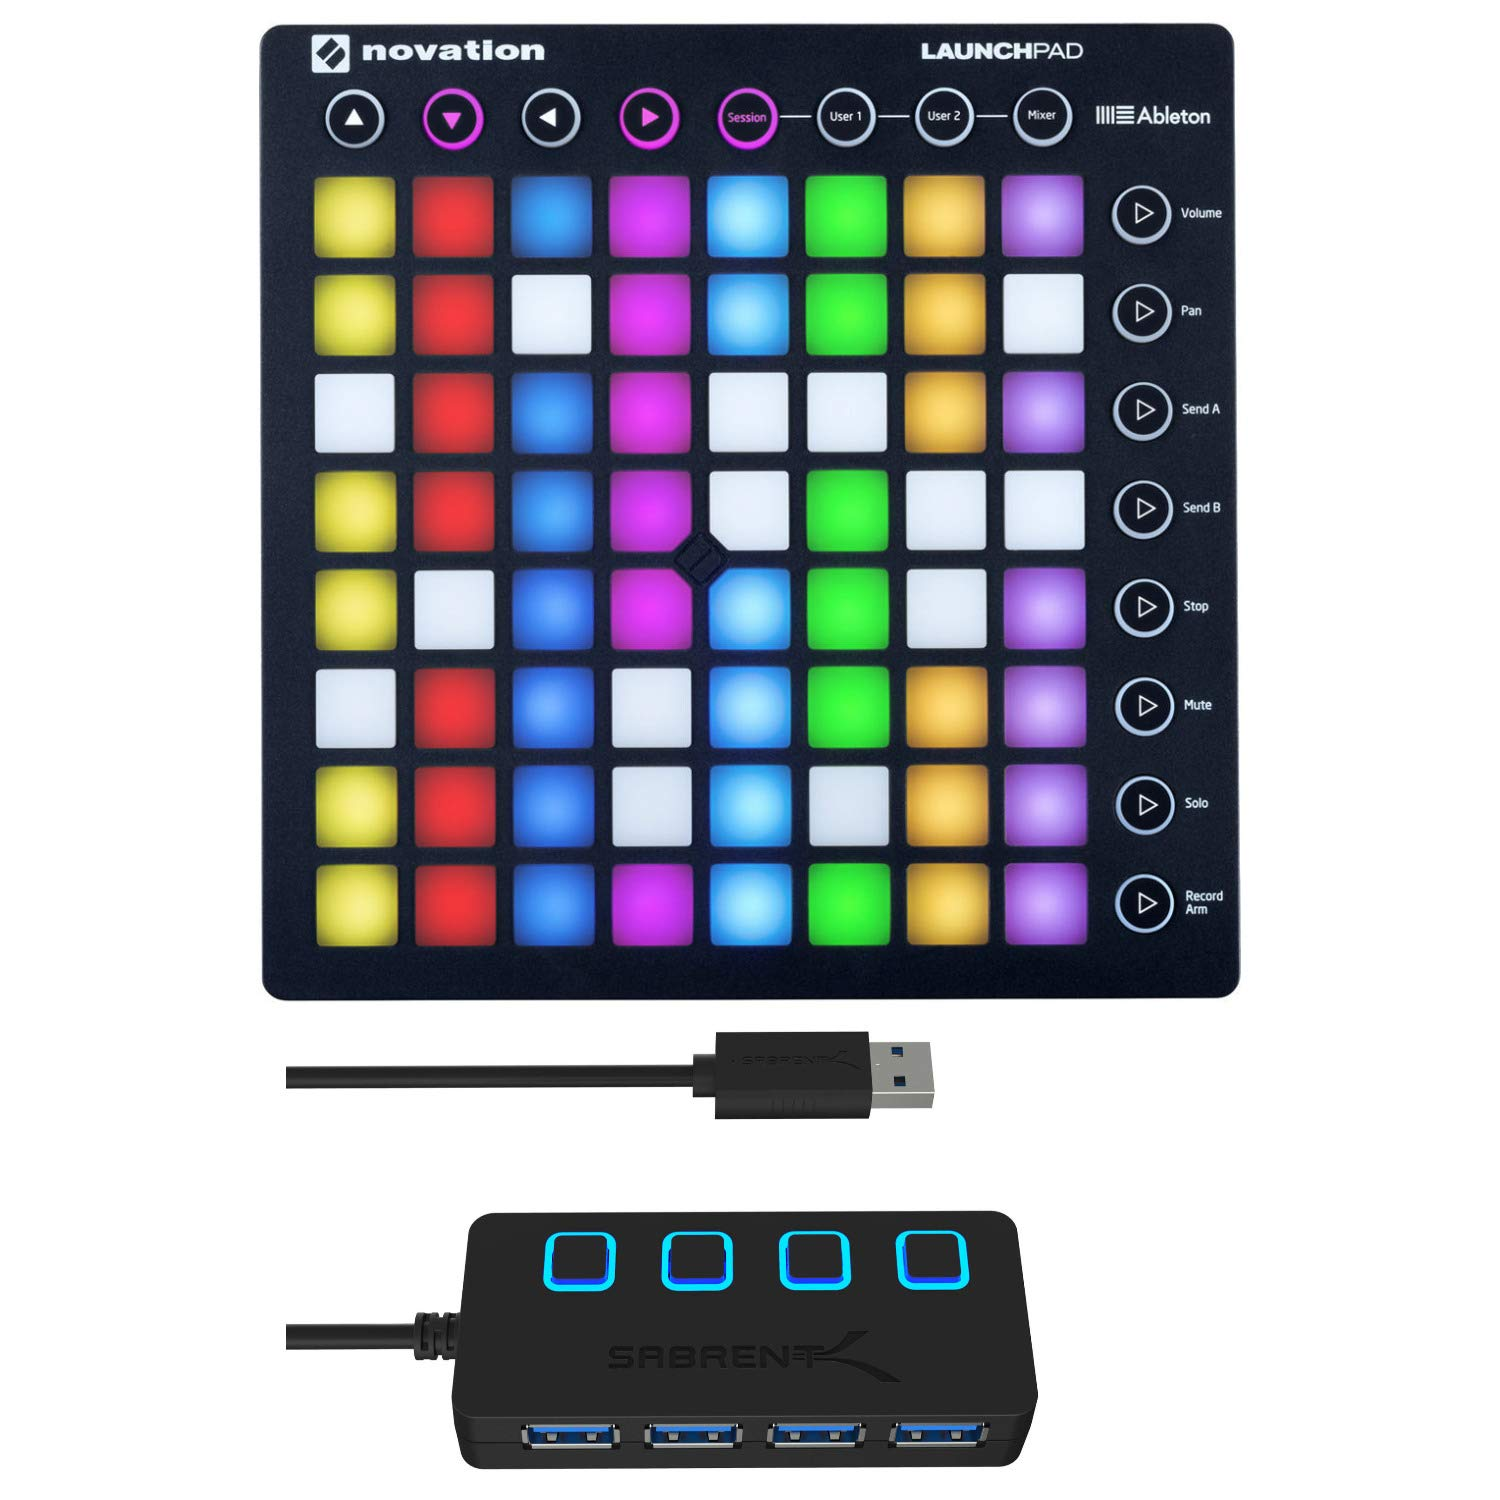 Novation Launchpad MK2 Ableton Live Controller with 4-Port 3.0 USB HUB by Novation